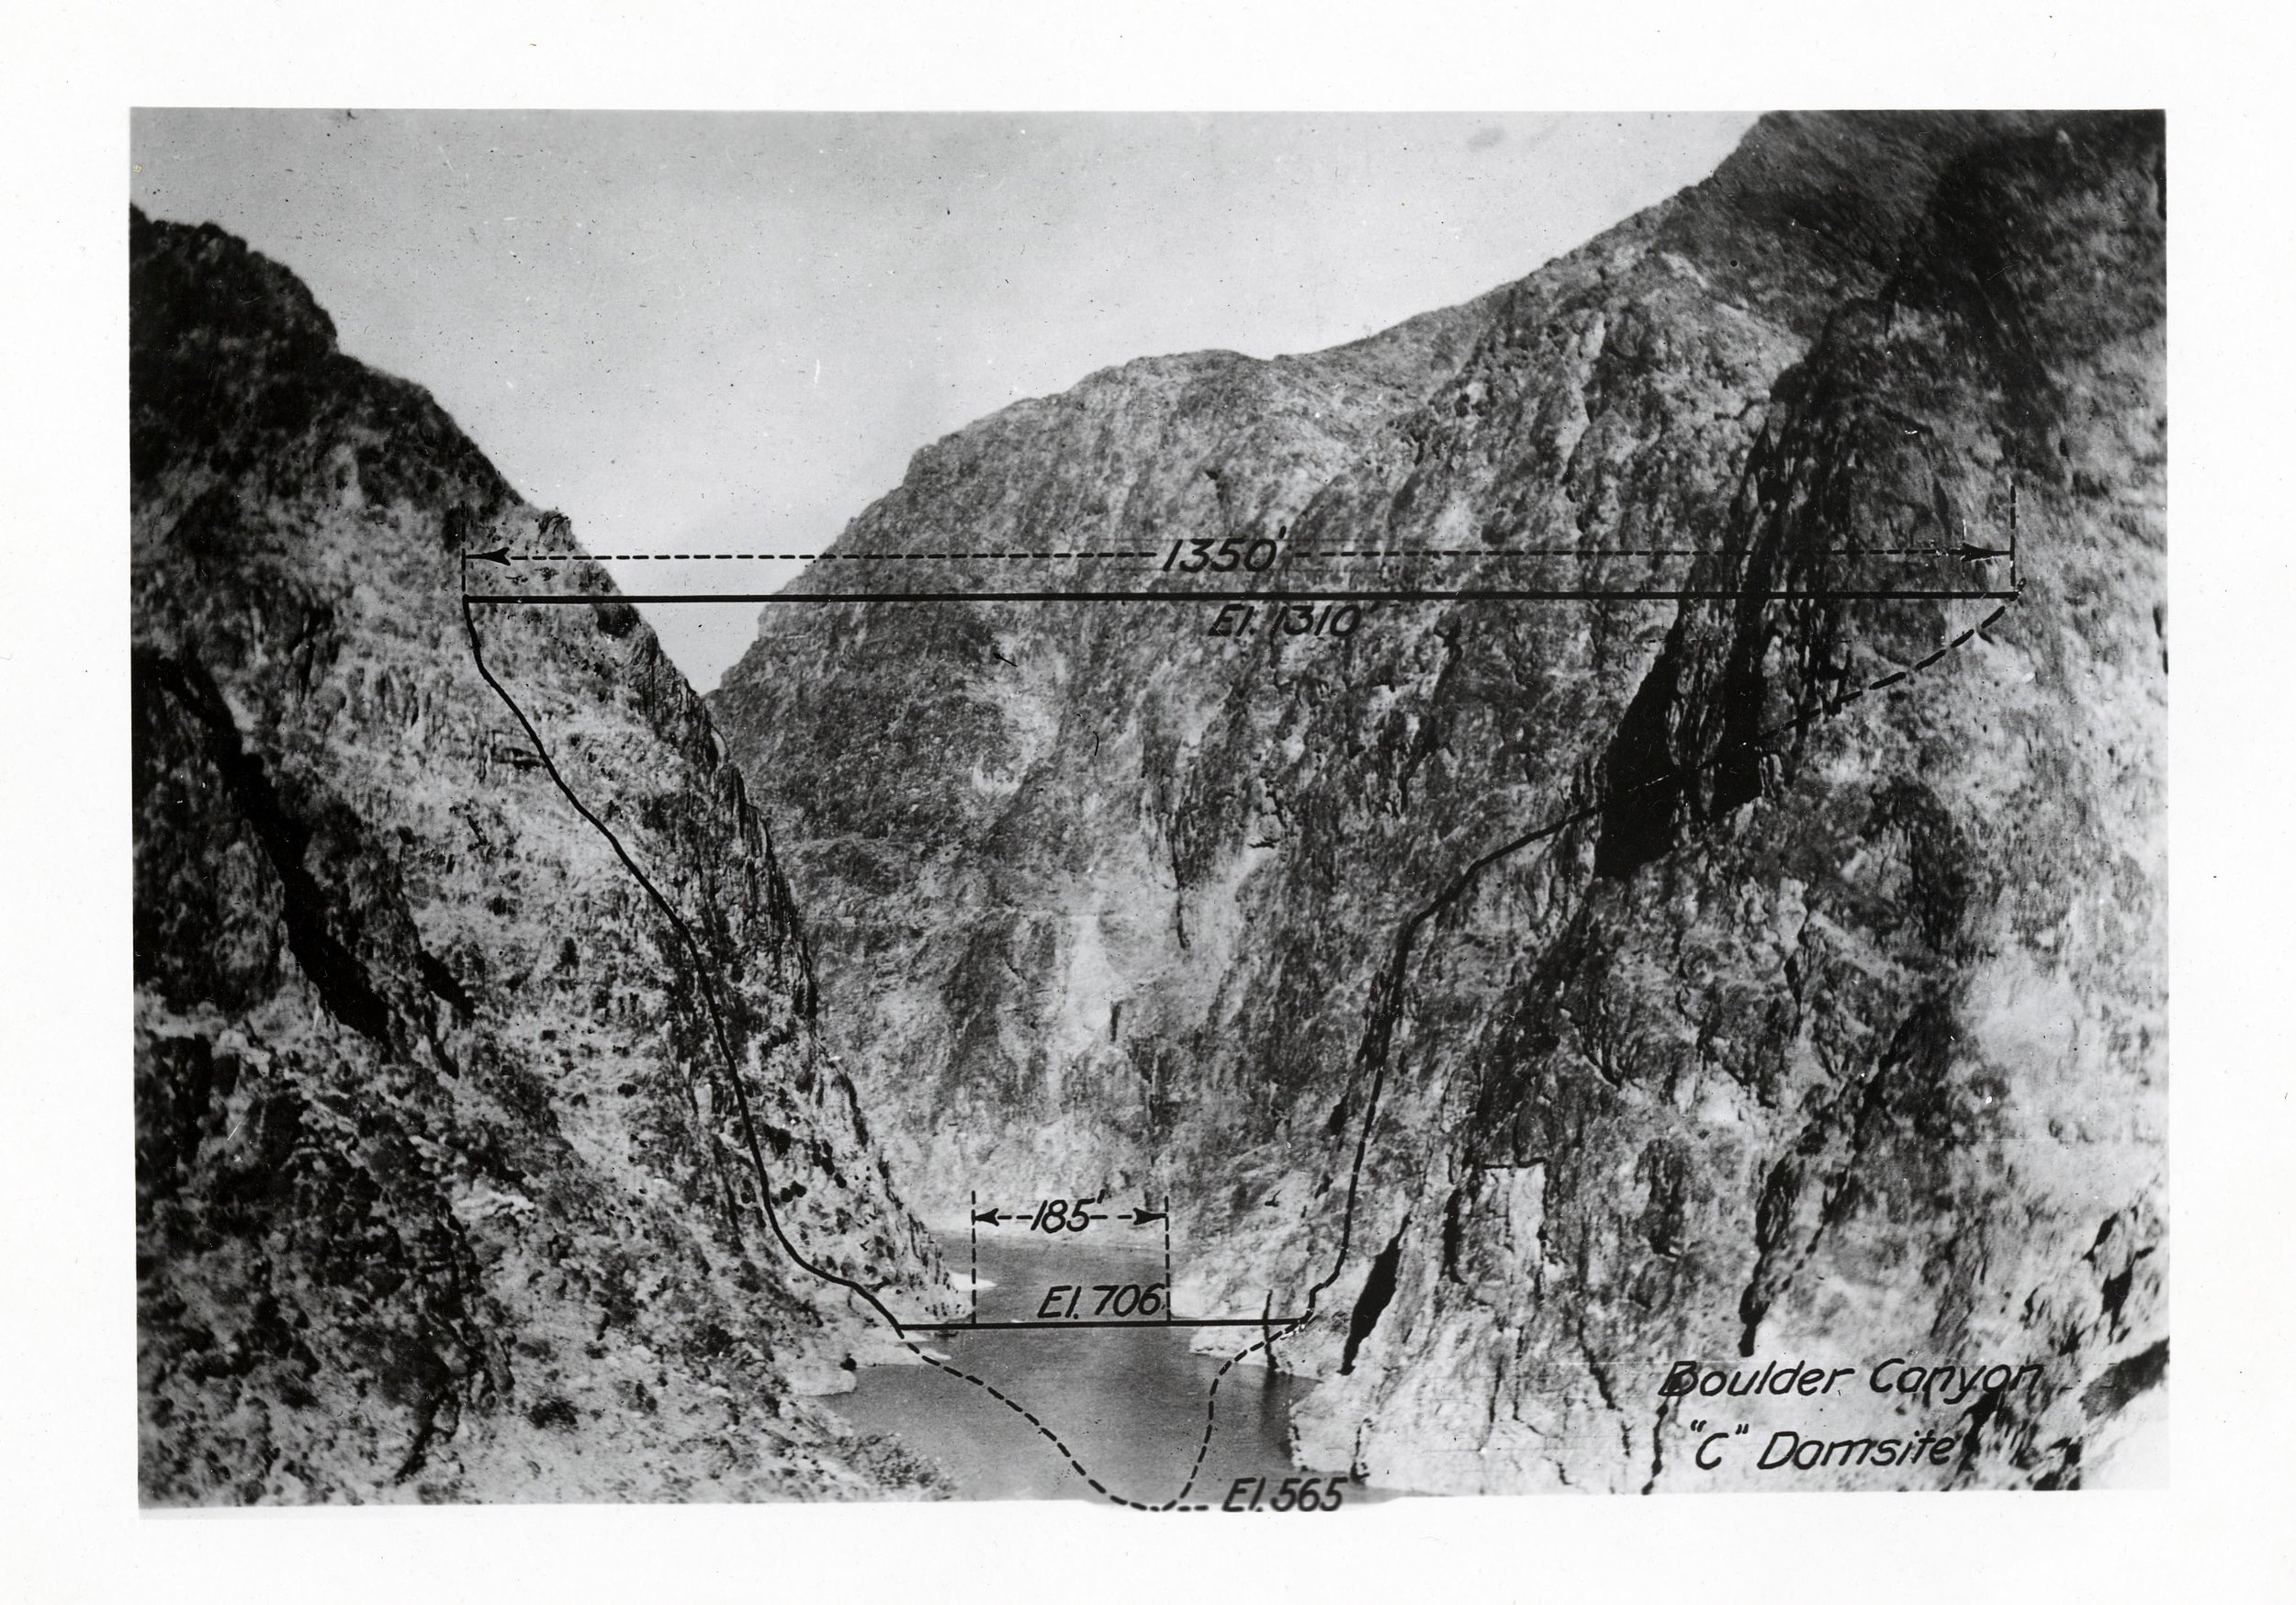 PHOTOGRAPH OF THE BOULDER CANYON DAM SITE BEFORE CONSTRUCTION (SERIES 13912). PHOTO COURTESY OF THE UTAH STATE ARCHIVES AND RECORDS SERVICE.